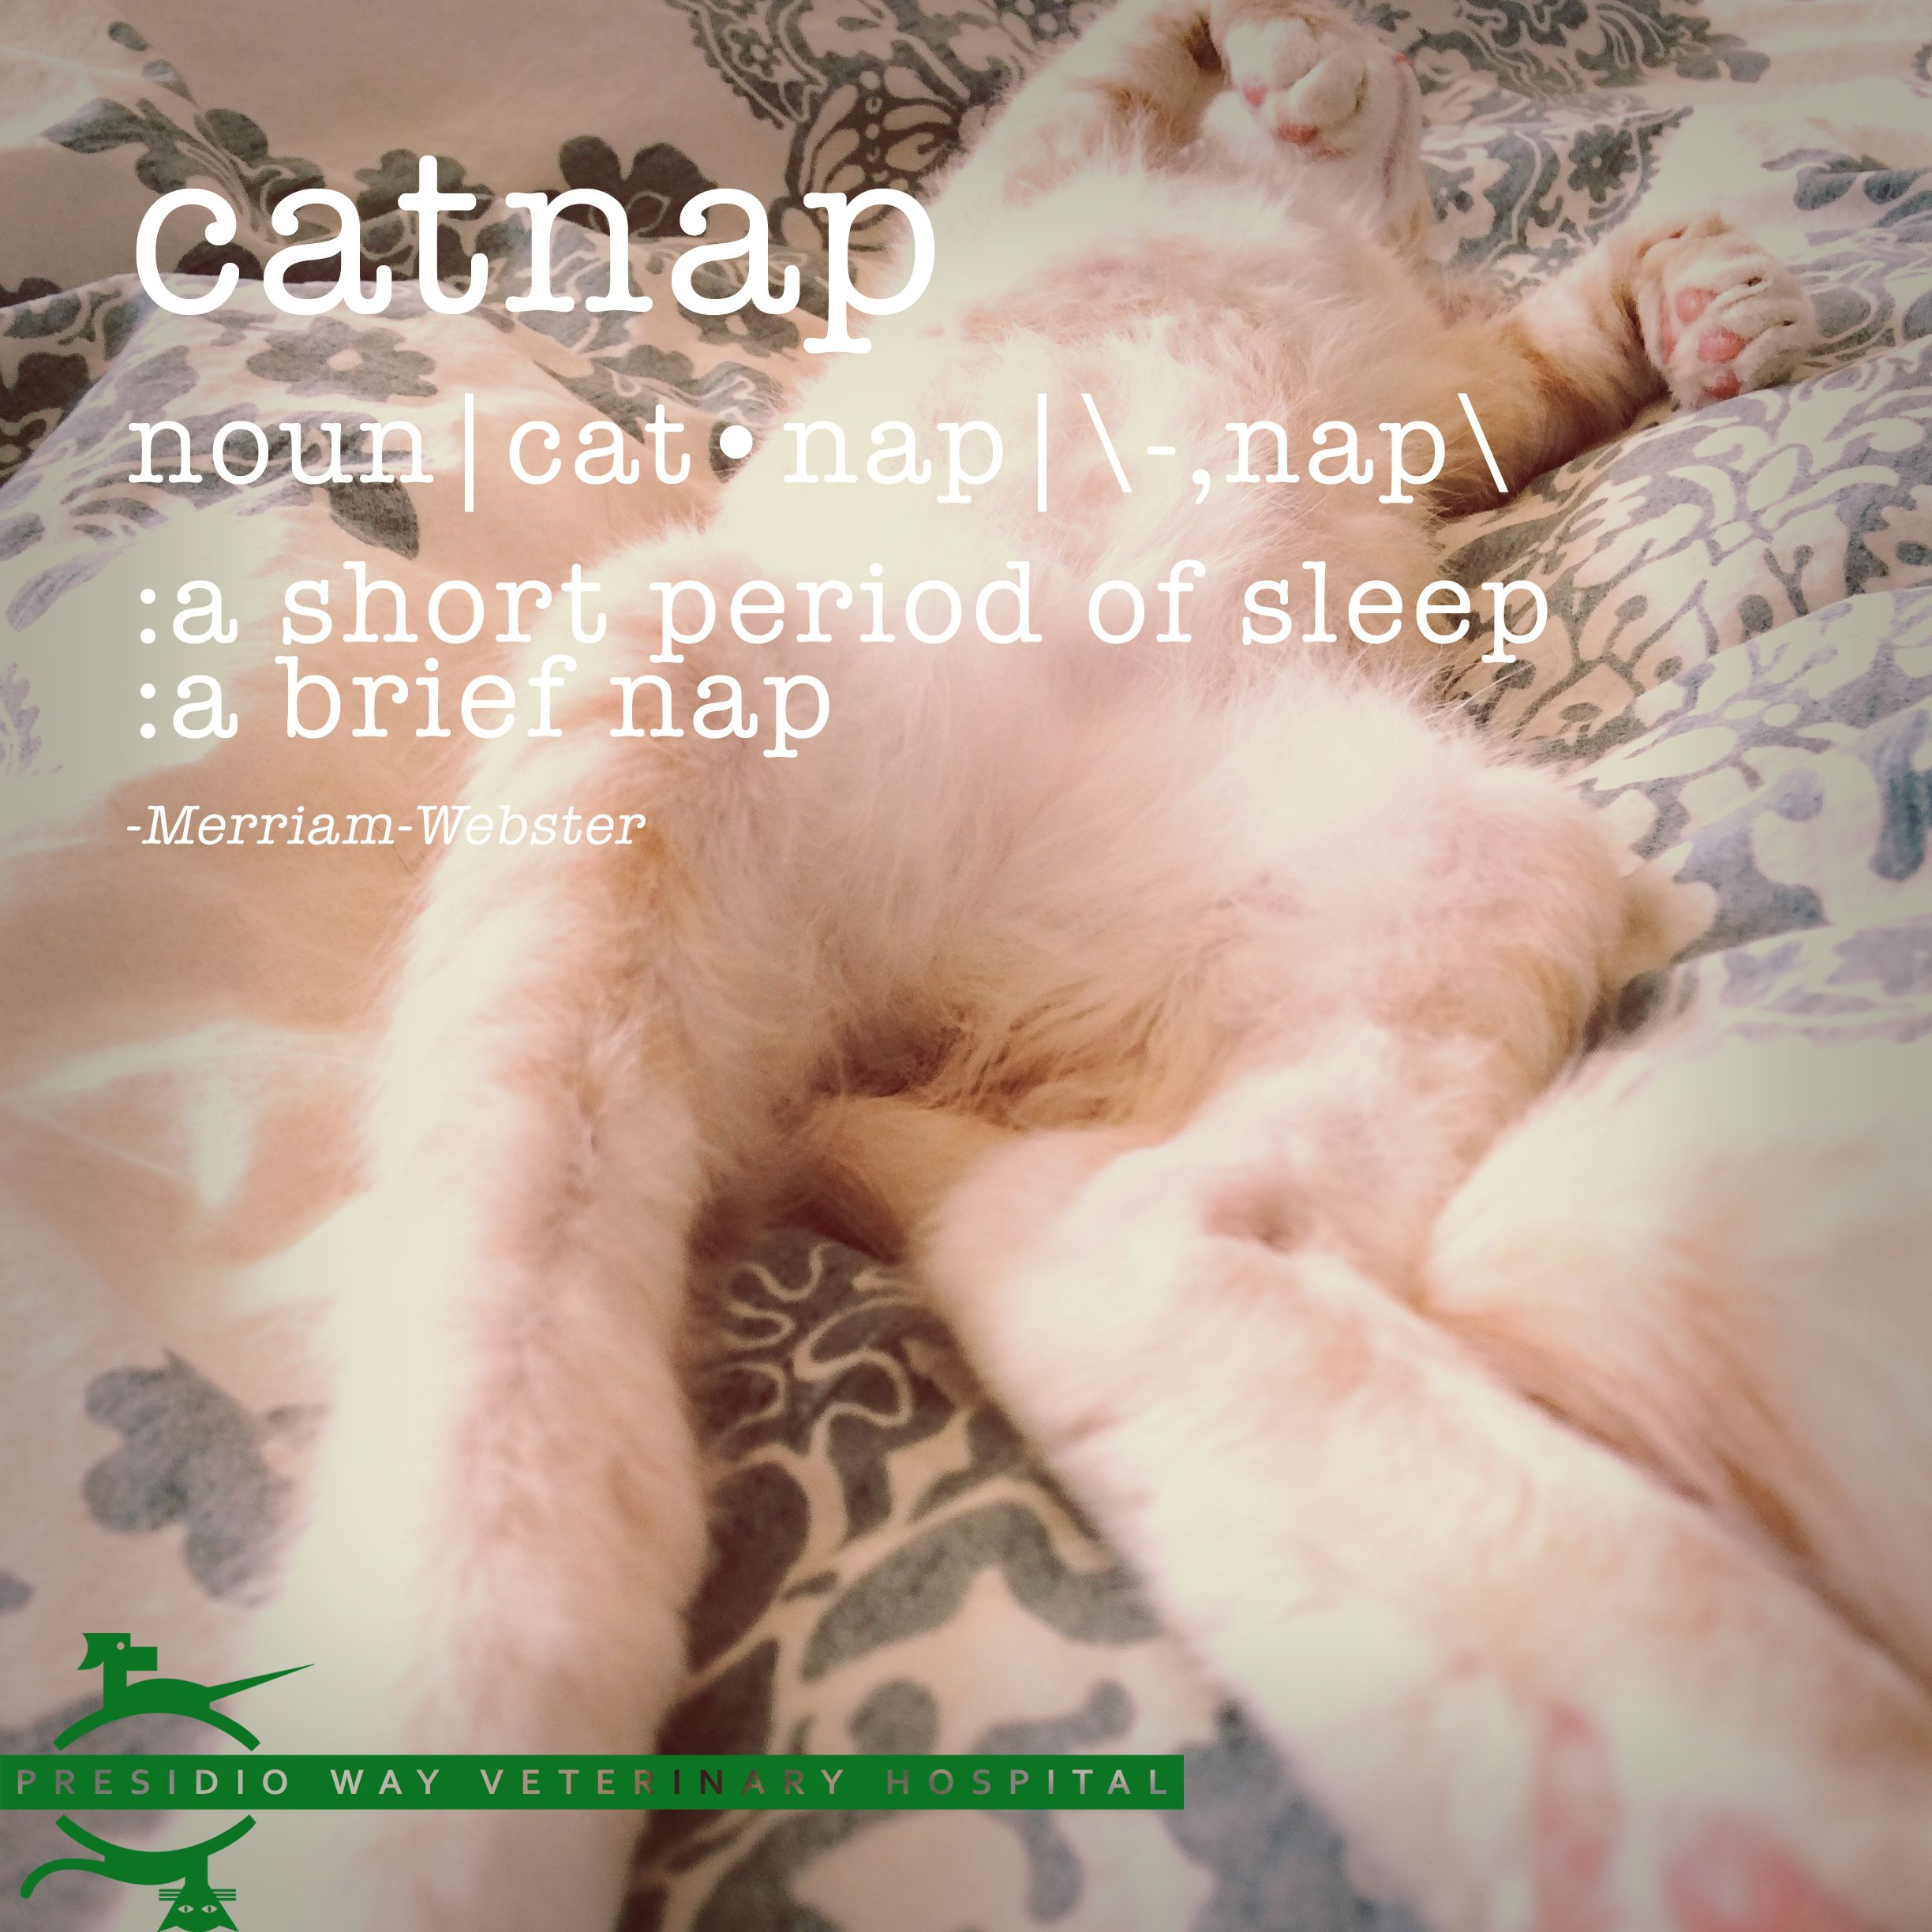 Noun Cat Nap Nap A Short Period Of Sleep A Brief Nap Merriam Webster Presidioway Catnap Sleep Nap Cats Veterinary Hospital Cat Nap Animal Antics